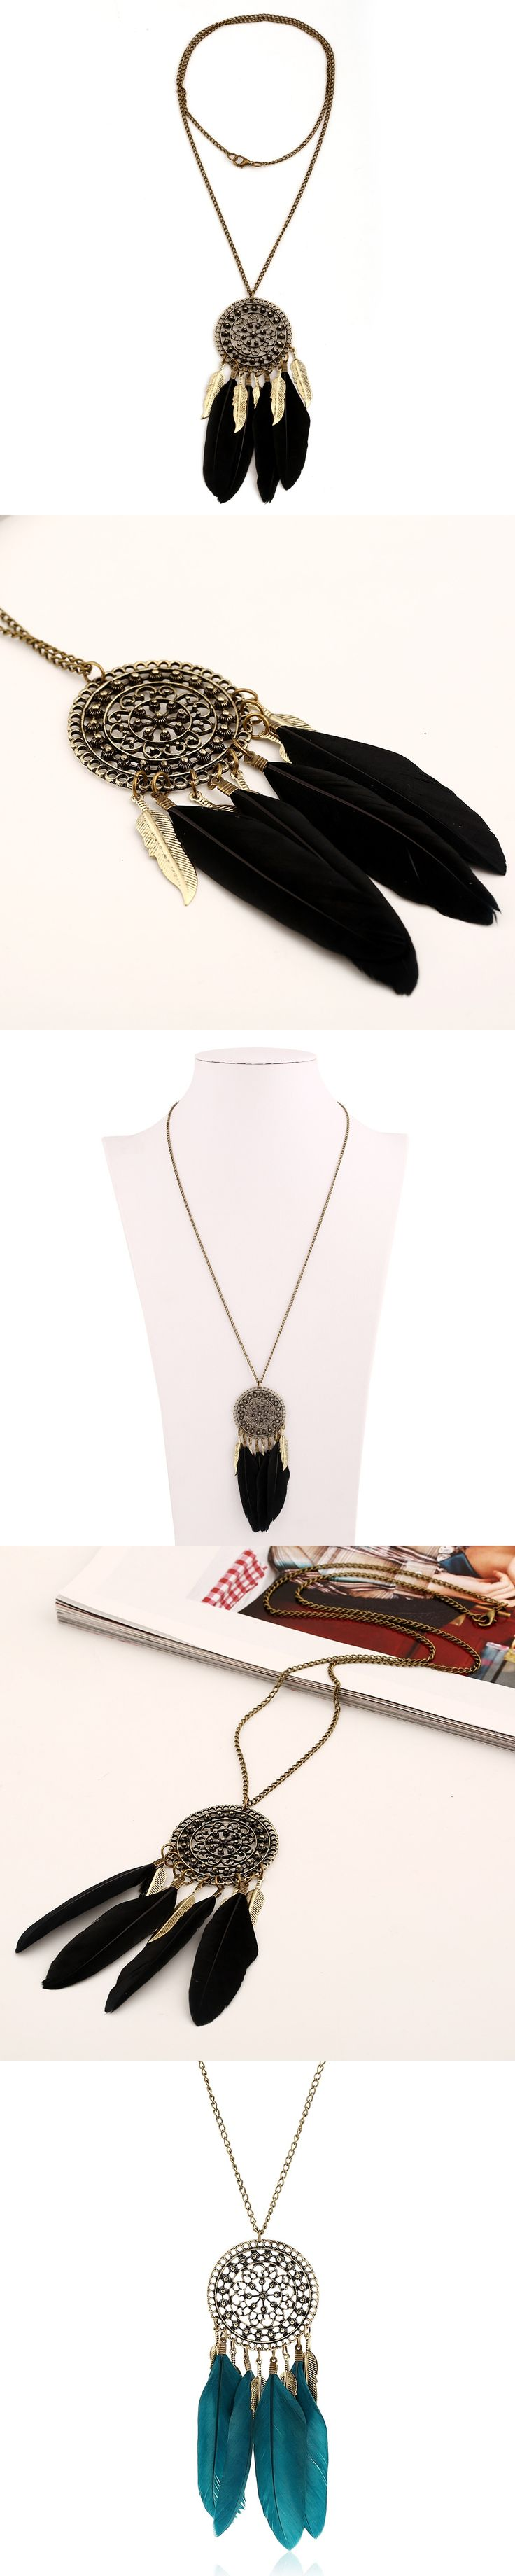 Vintage  Feather Leaves Long Pendant Necklace Hollow Carved Chain Maxi Collier Necklace Gros Collar Femme 2016 Women Jewelry